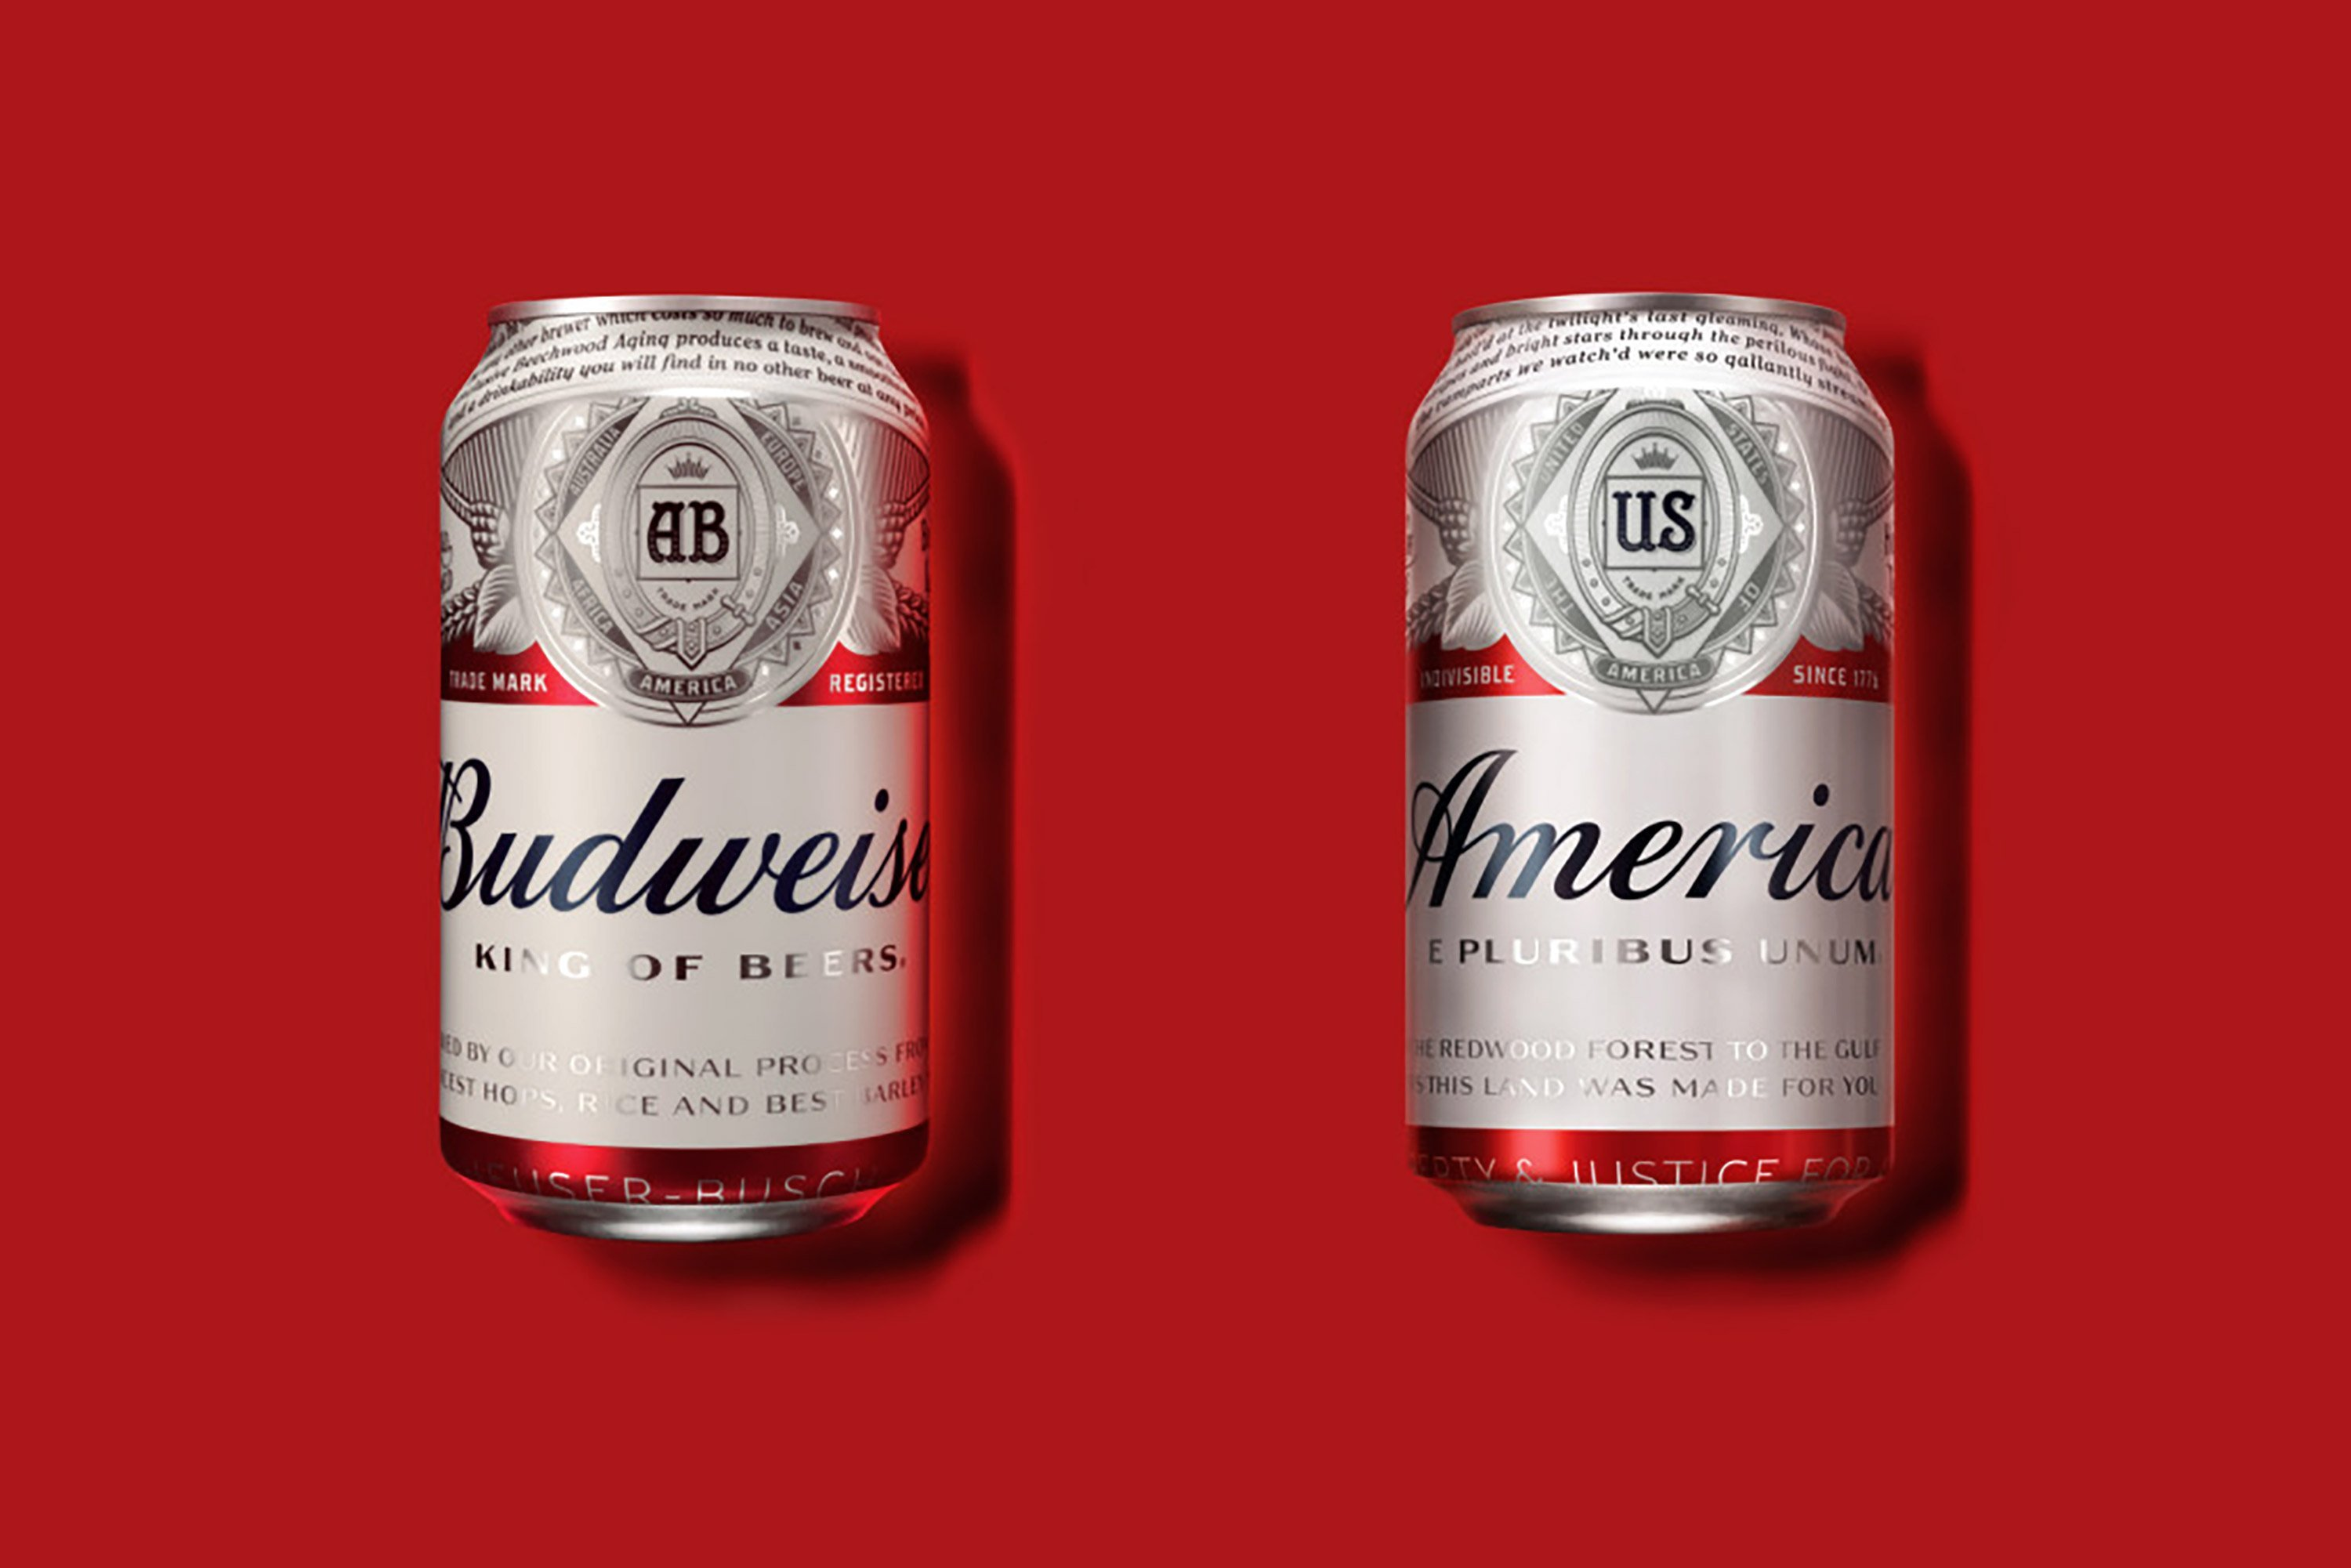 Anheuser-Busch is renaming Budweiser, its most famous brand, as America.